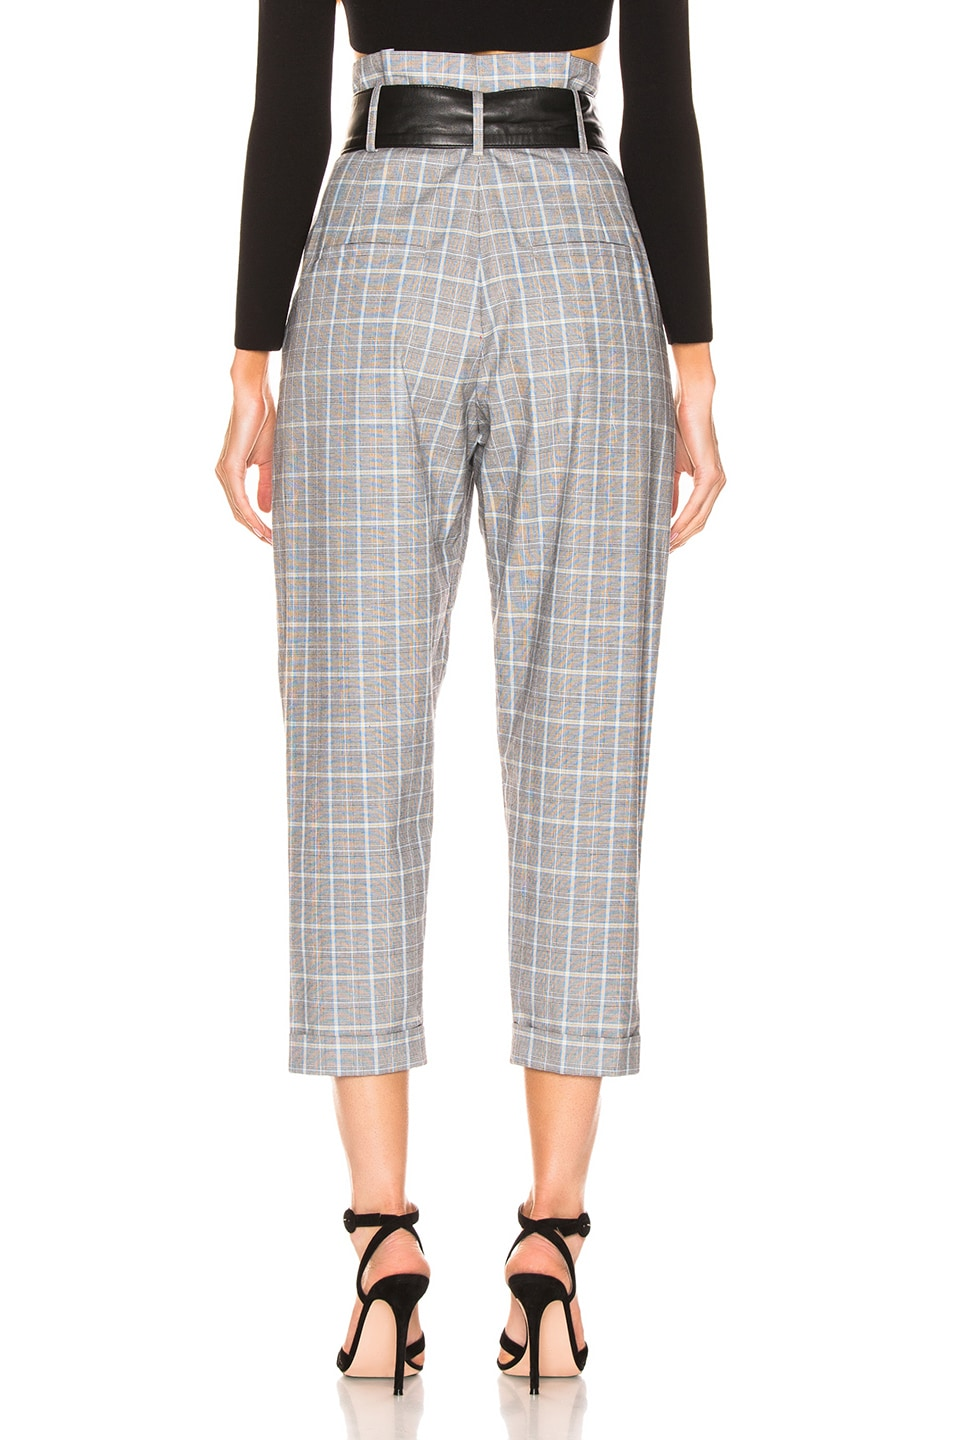 Image 3 of Marissa Webb Anders Pant with Leather Belt in Grey Multi Plaid